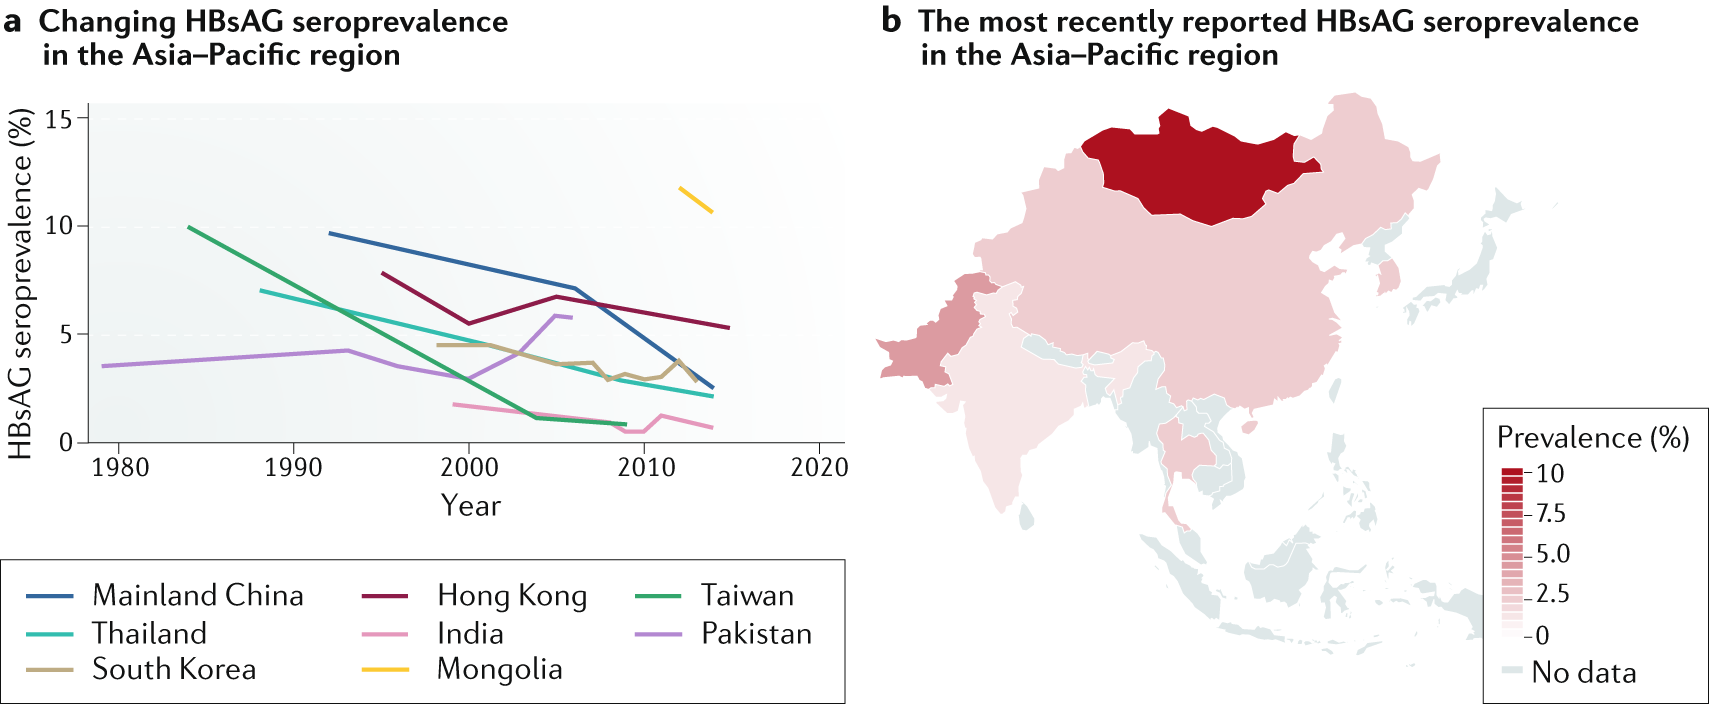 The changing epidemiology of liver diseases in the Asia